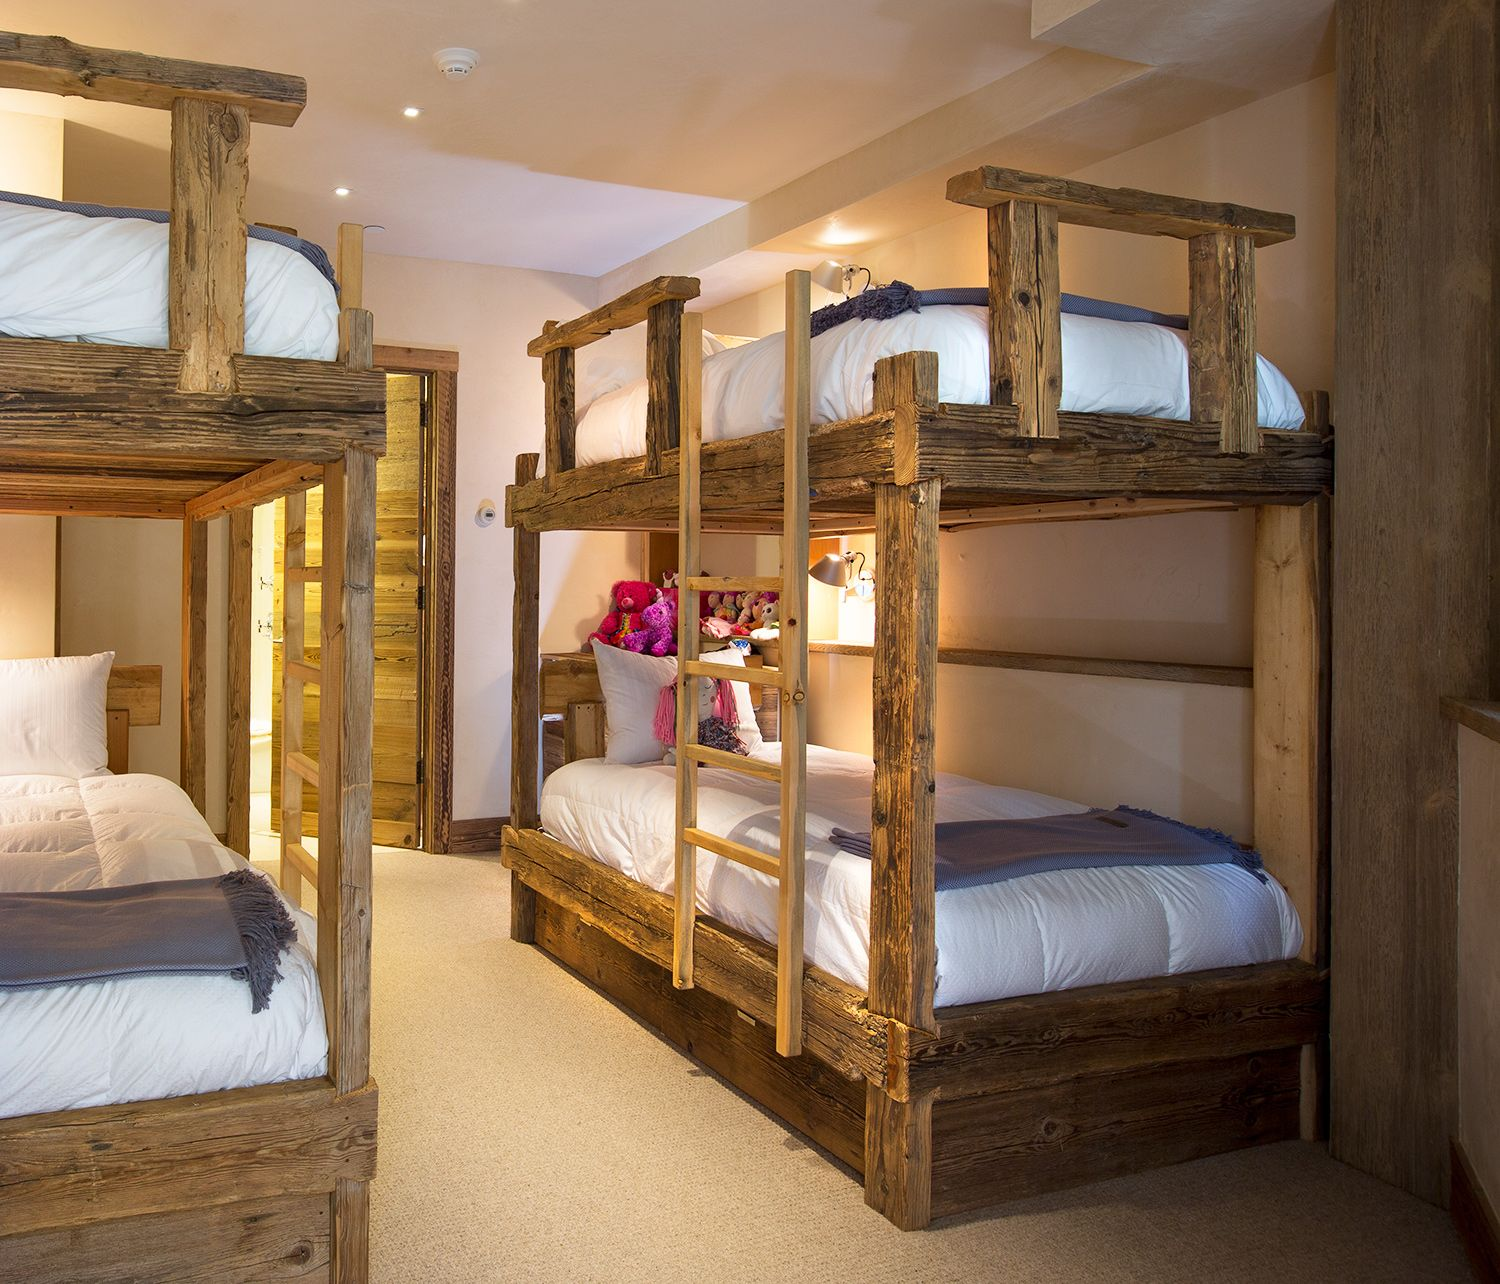 A Kids Room In Luxury Creekside Residence Vail Village Rocky Mountains Colorado The Reclaimed Wood Bunk Beds Are Crafted From Hacked European